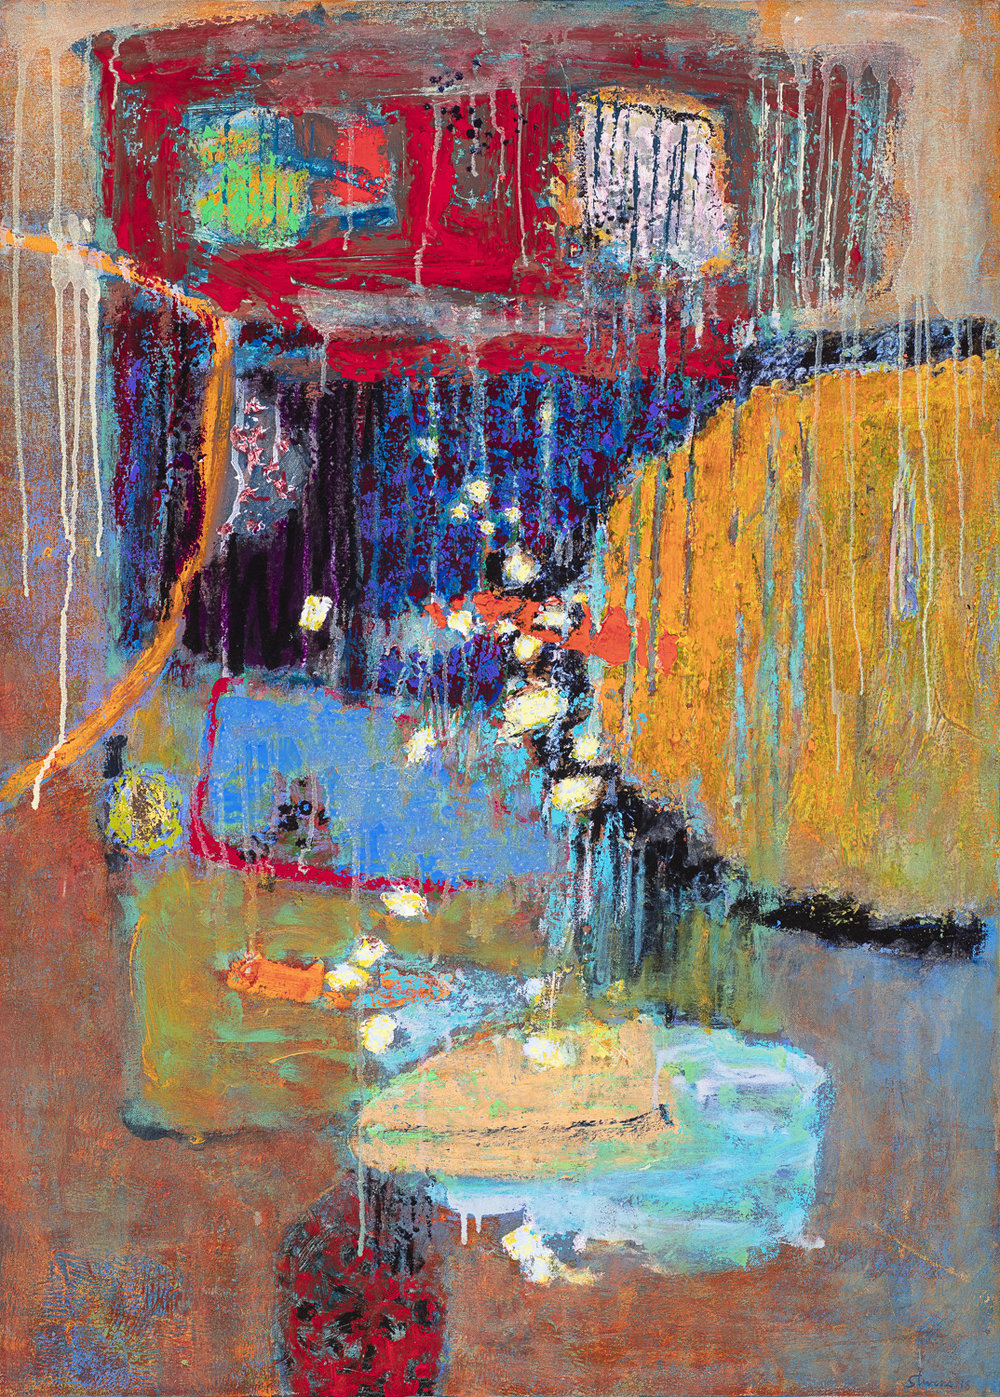 Abstract Knowledge  | oil on canvas | 36 x 26"